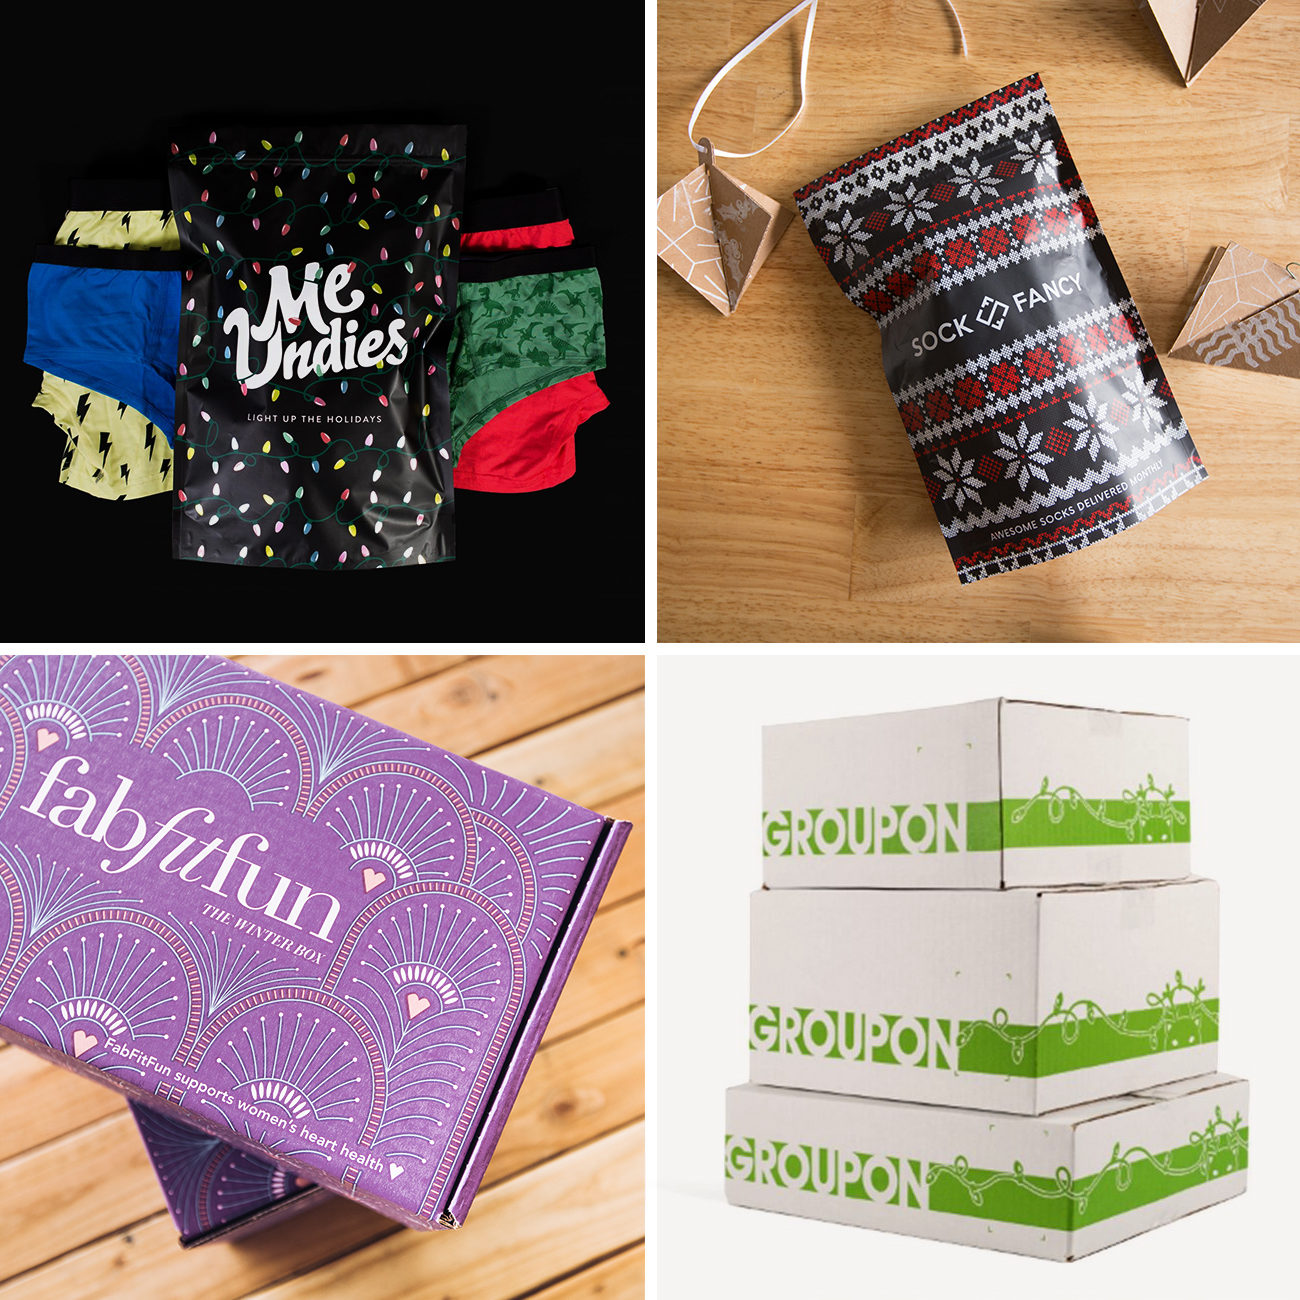 Photos via: Glossier, Lumi, and Brittany Campbell 90 Ideas to Spruce Up Your Holiday Packaging Design